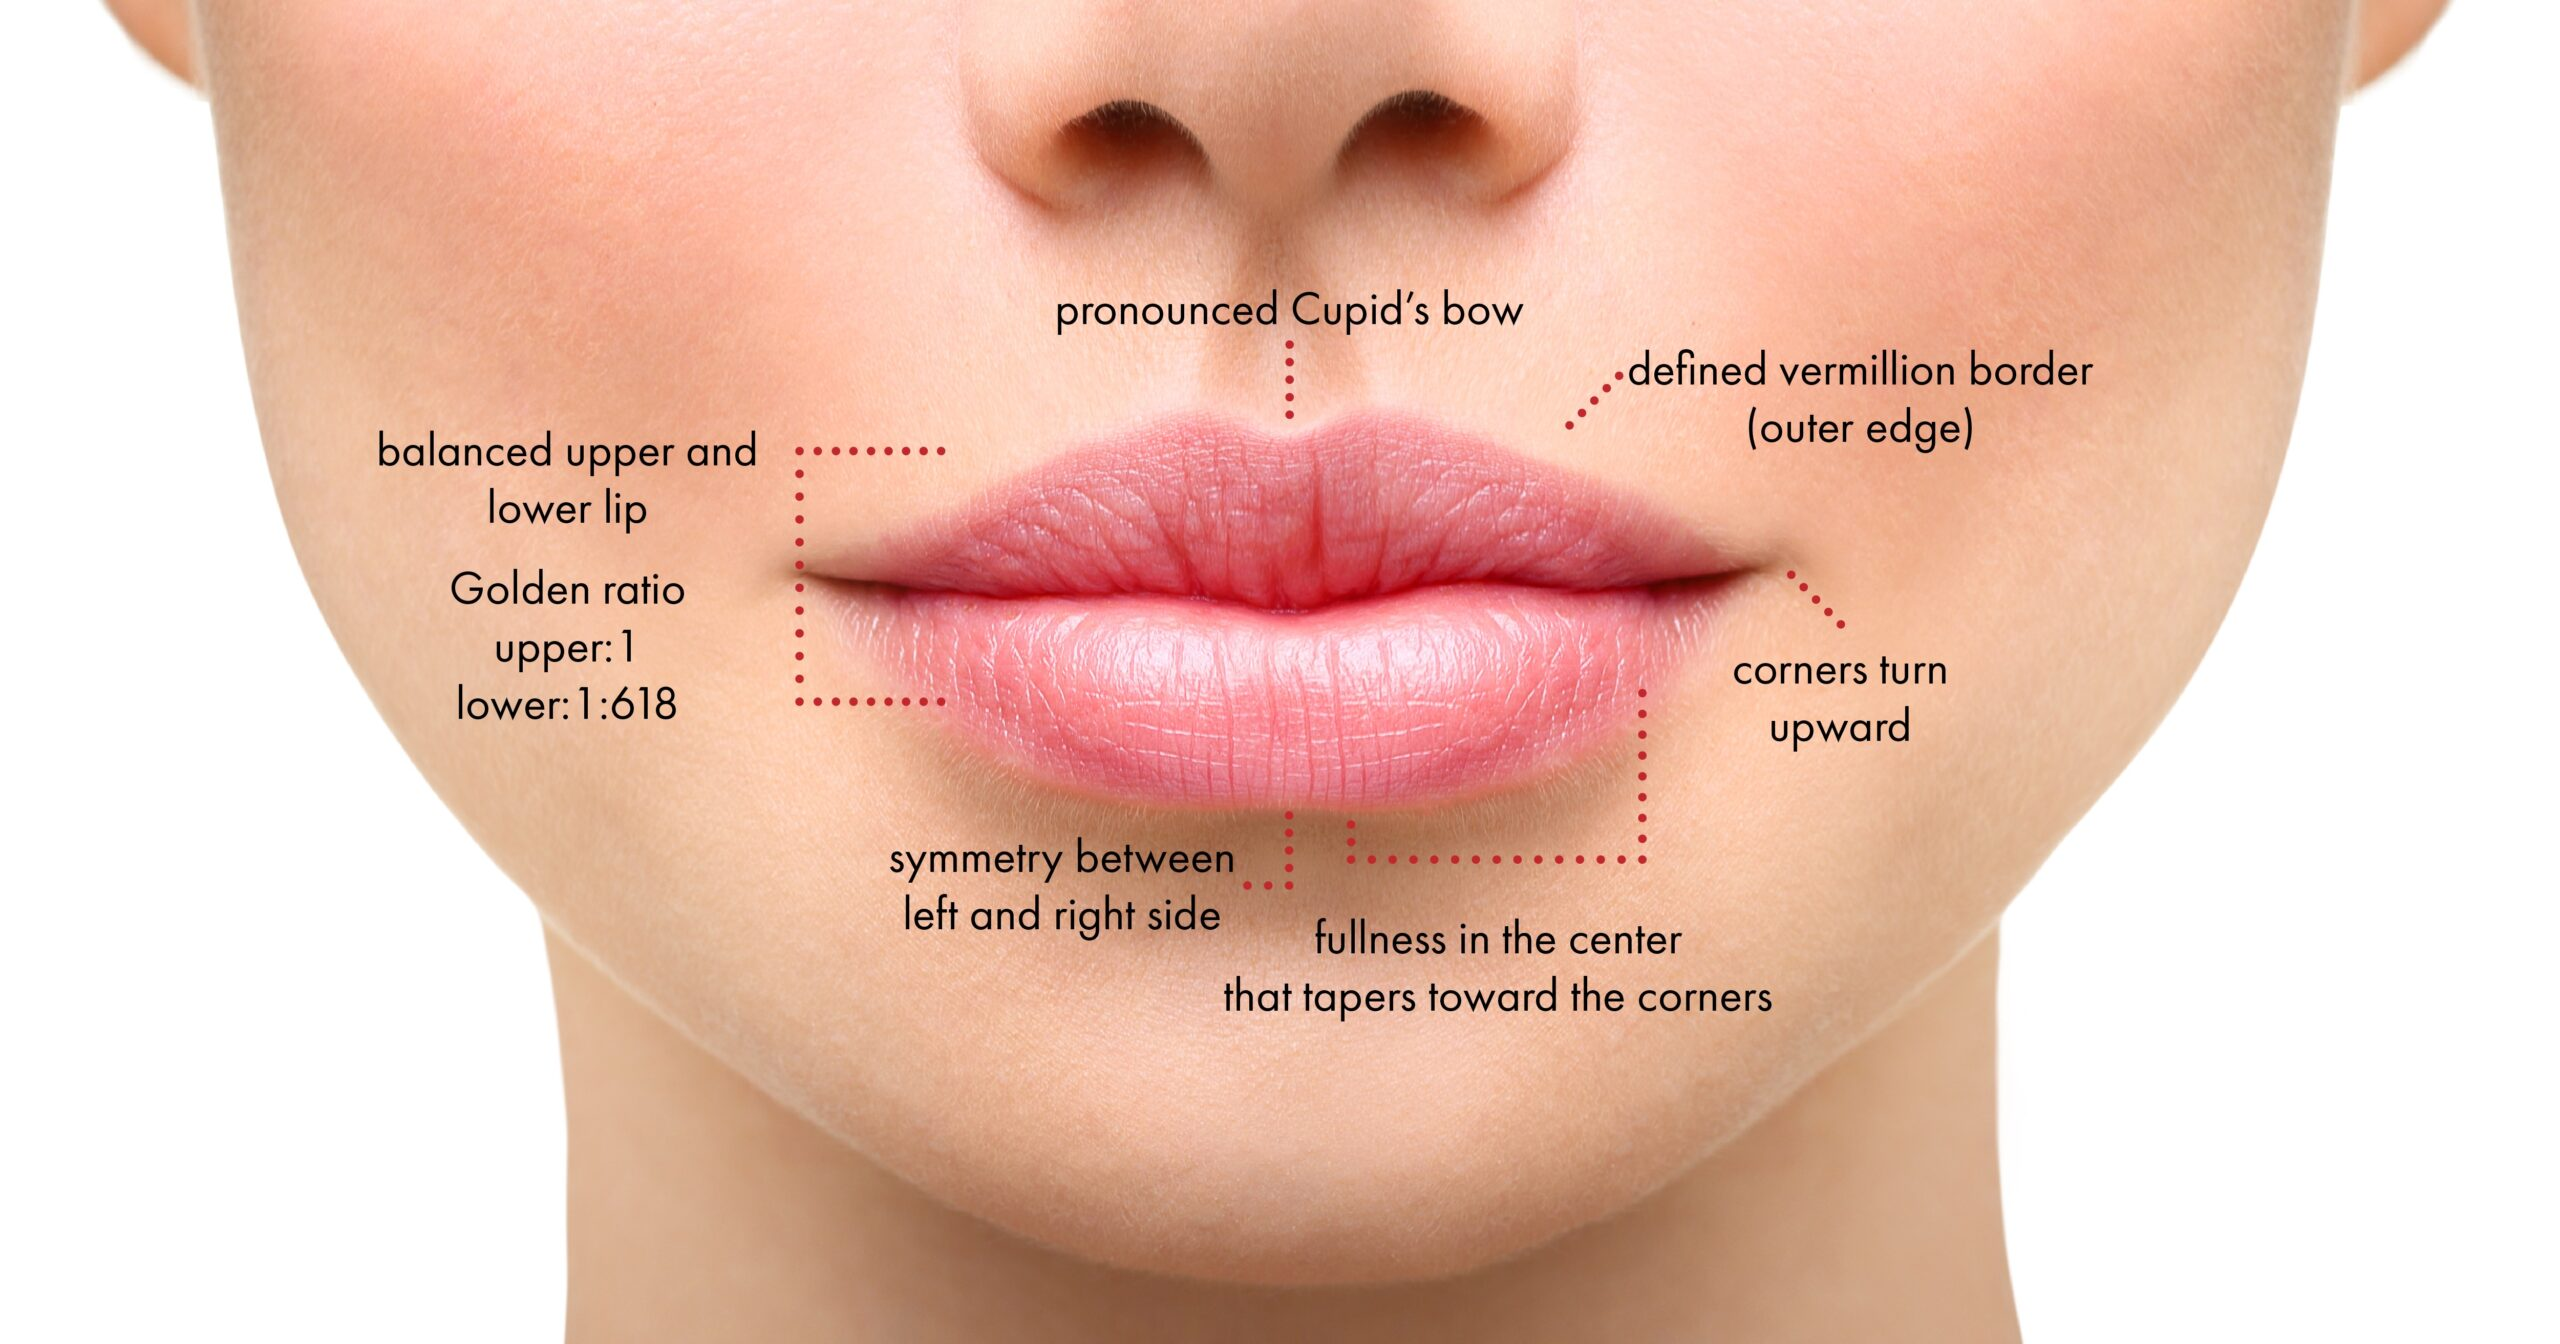 Facial diagram explaining the details of where to inject dermal fillers